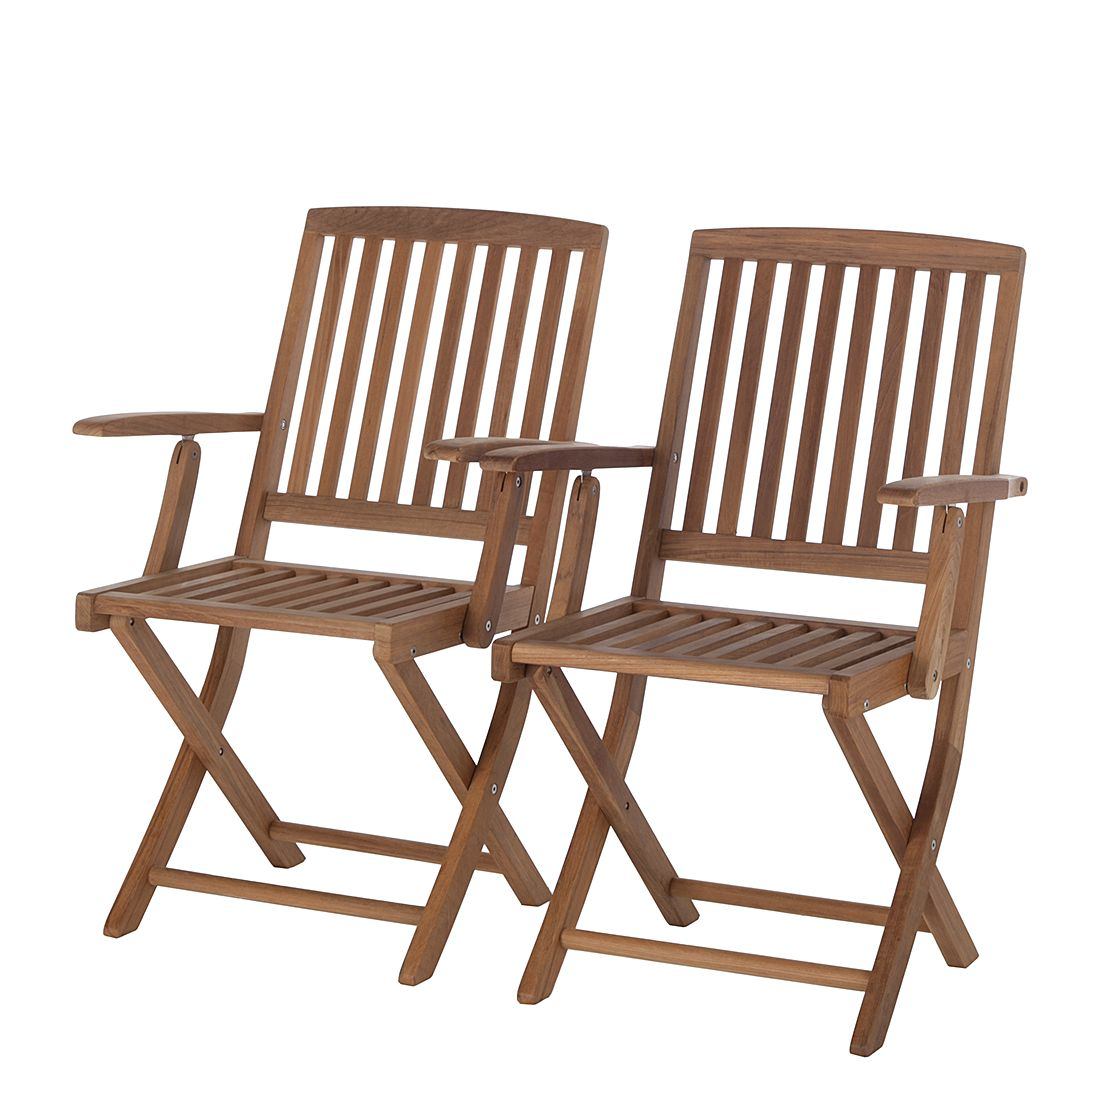 gartenklappstuhl teak line liviko 2er set teak ars natura g nstig. Black Bedroom Furniture Sets. Home Design Ideas